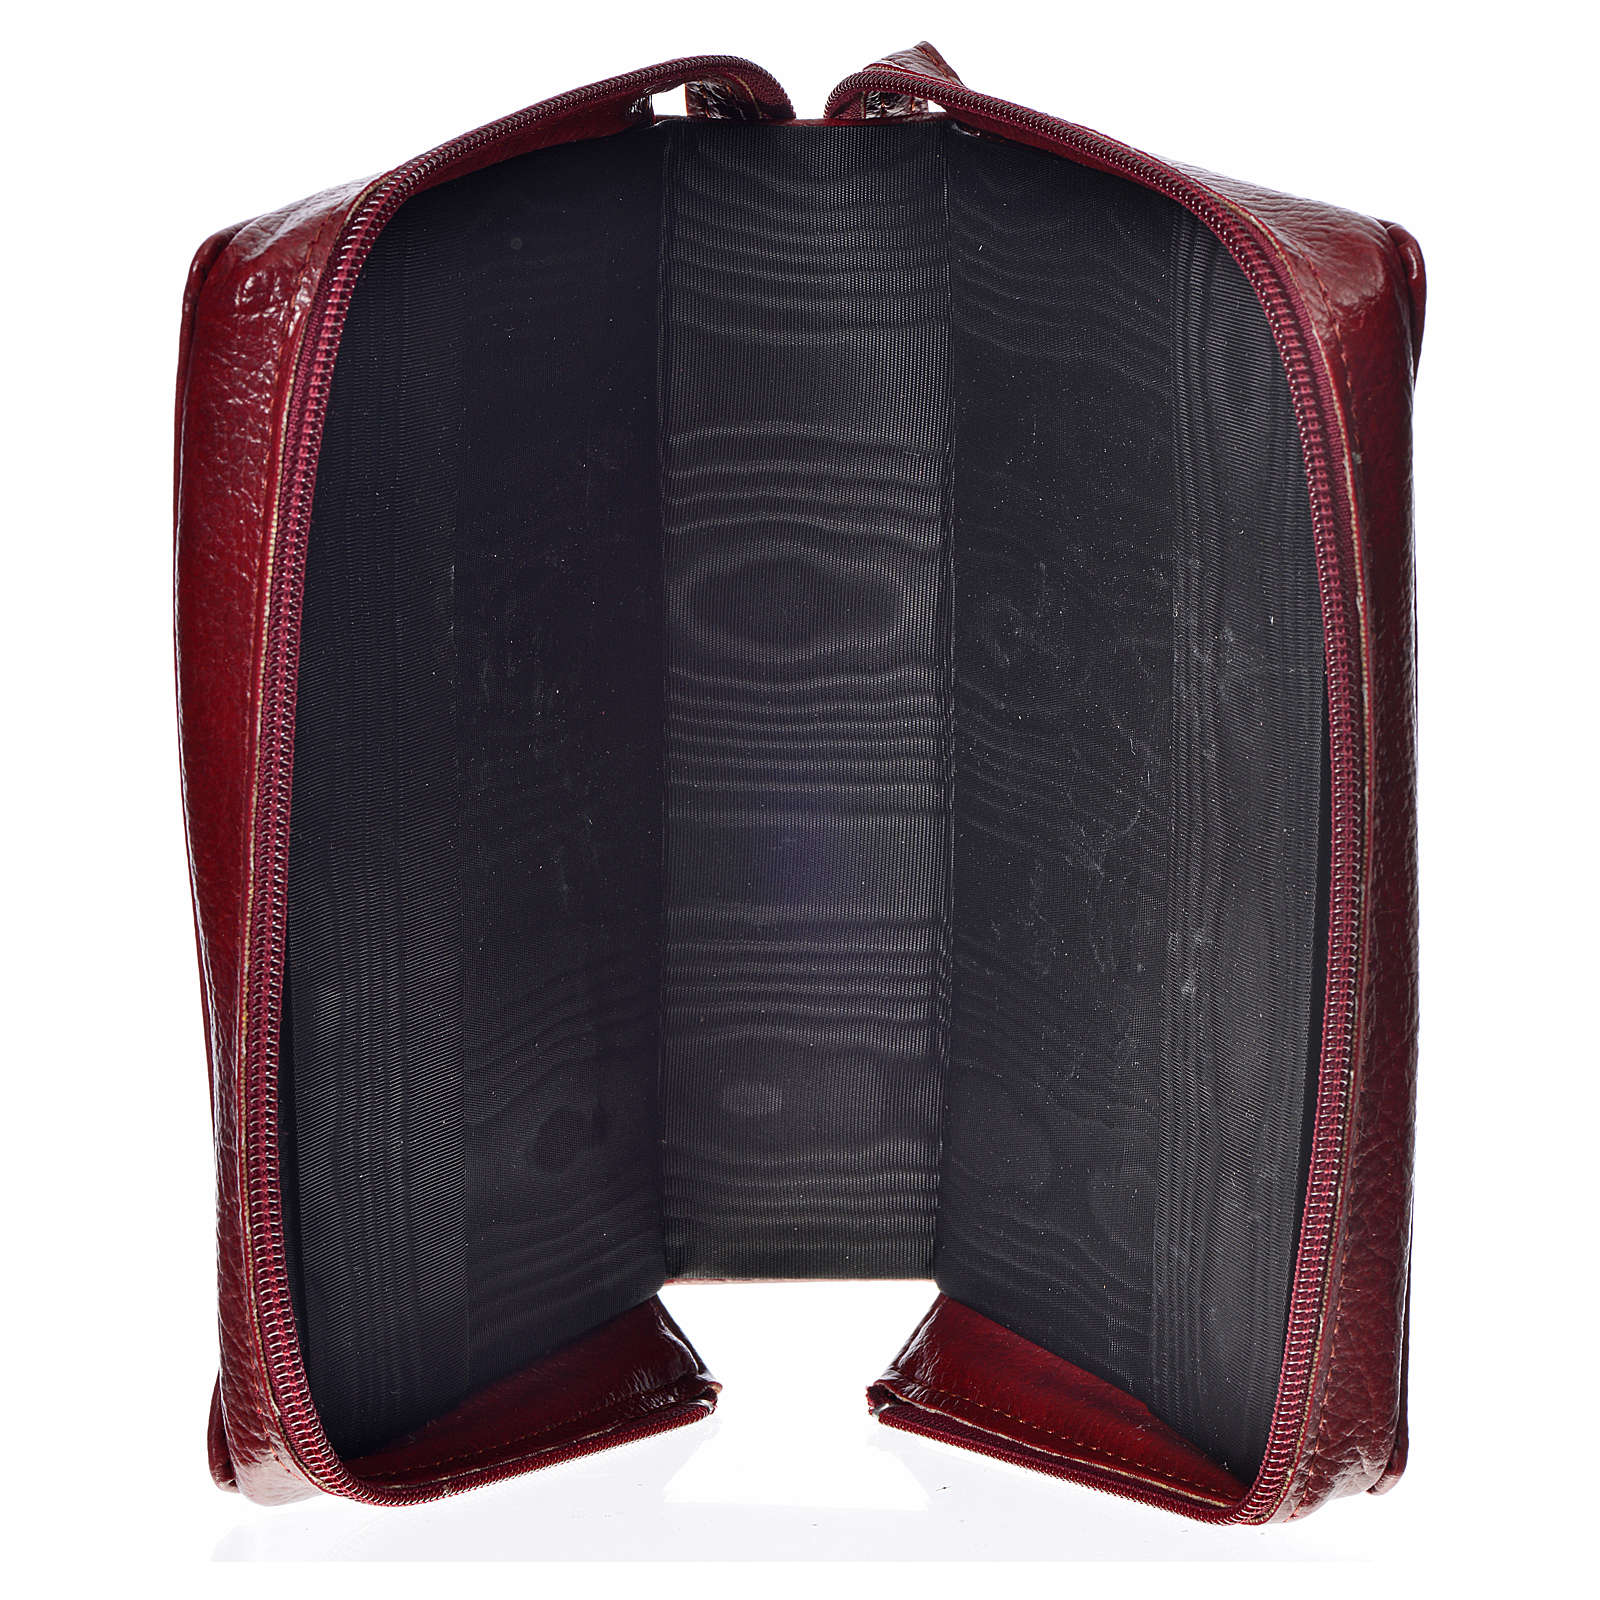 Divine Office cover in burgundy bonded leather with image of the Holy Family 4